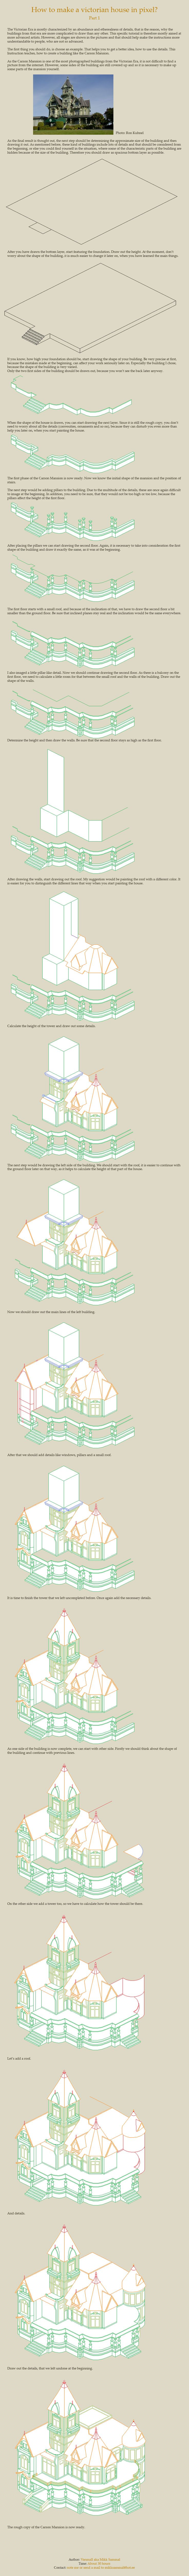 How to make a victorian house? by vanmall.deviantart.com on @deviantART